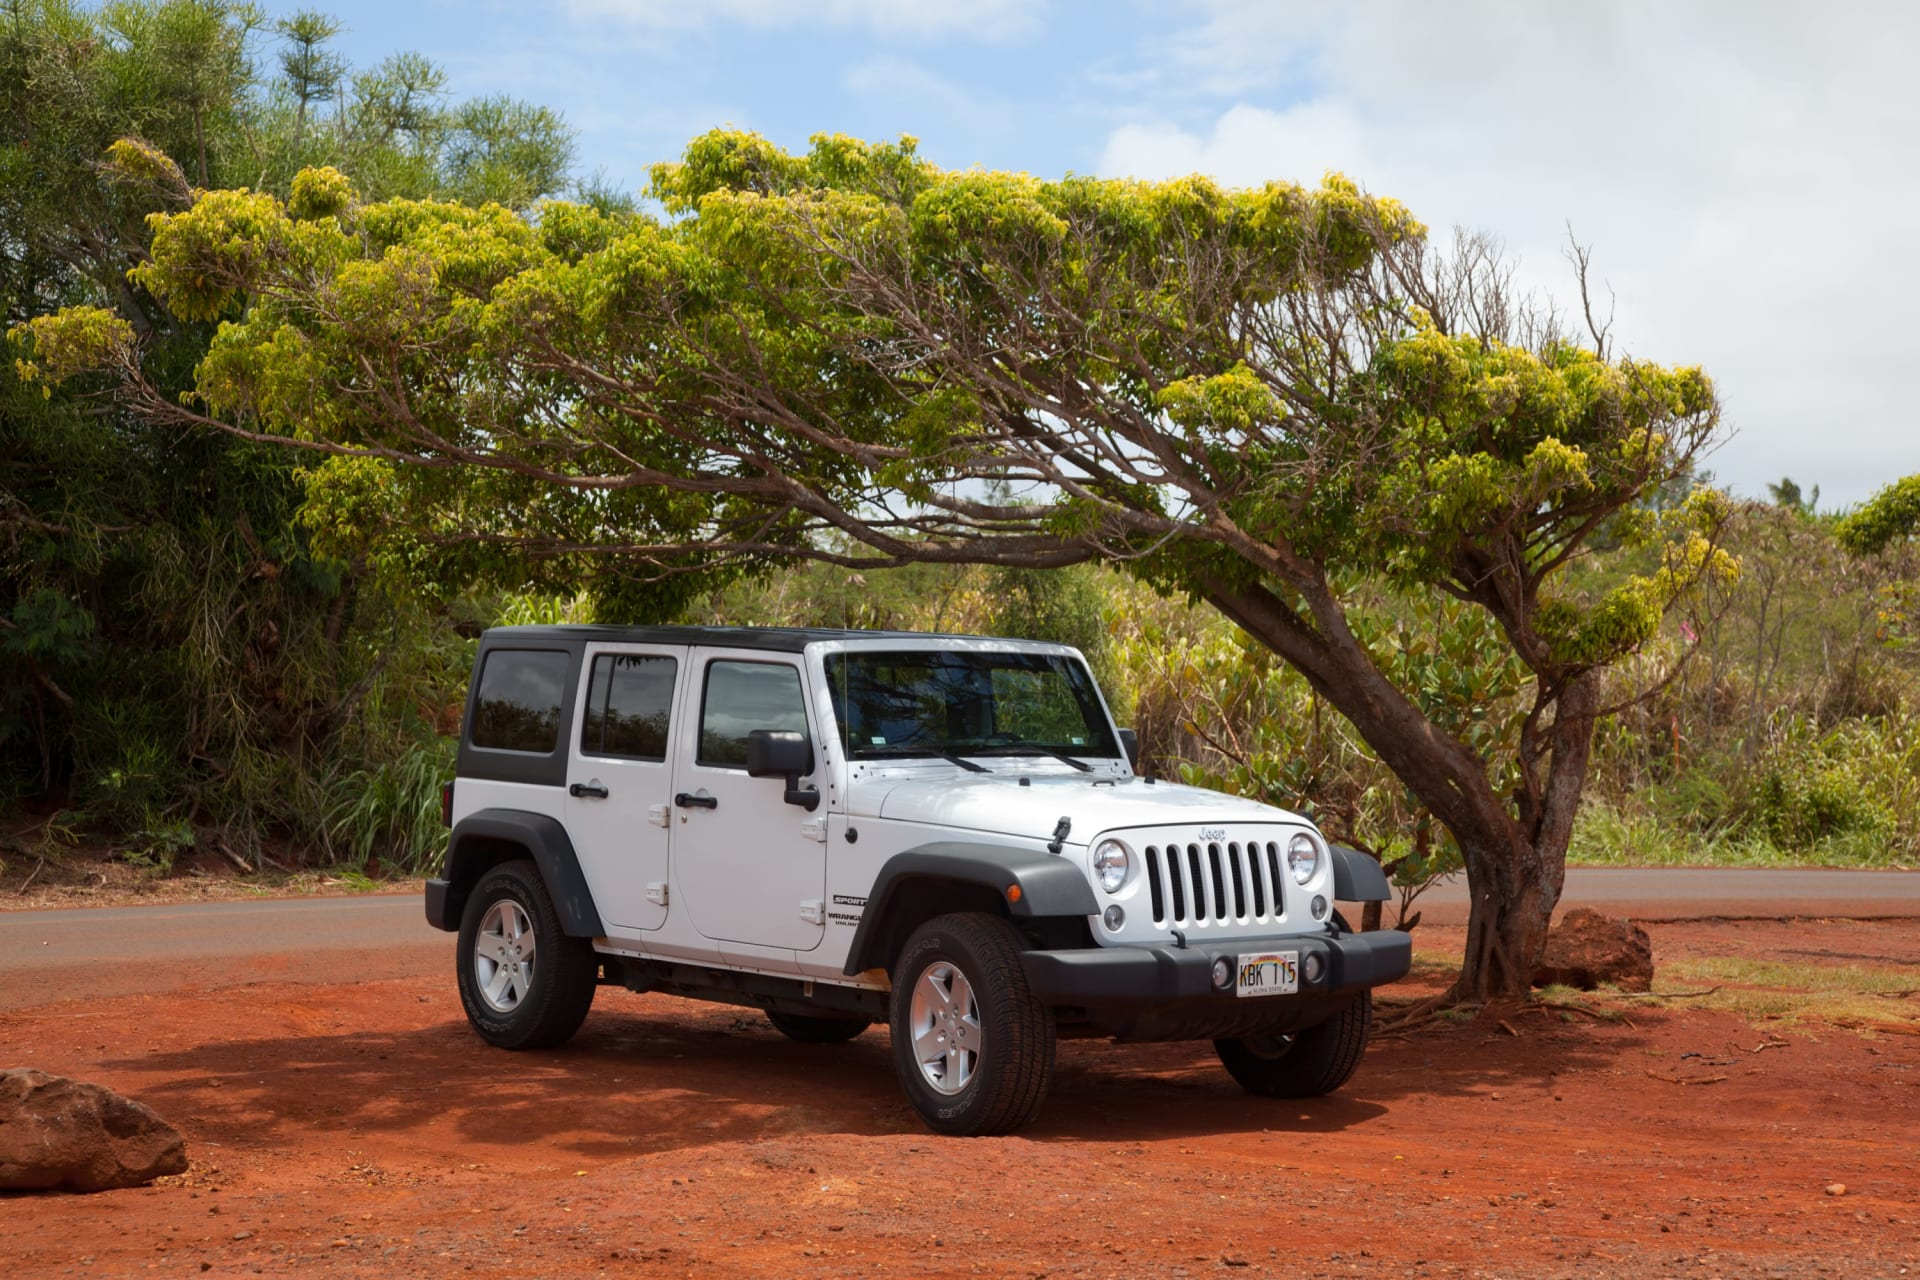 Kauai Rental Cars Booked Up Till Early August